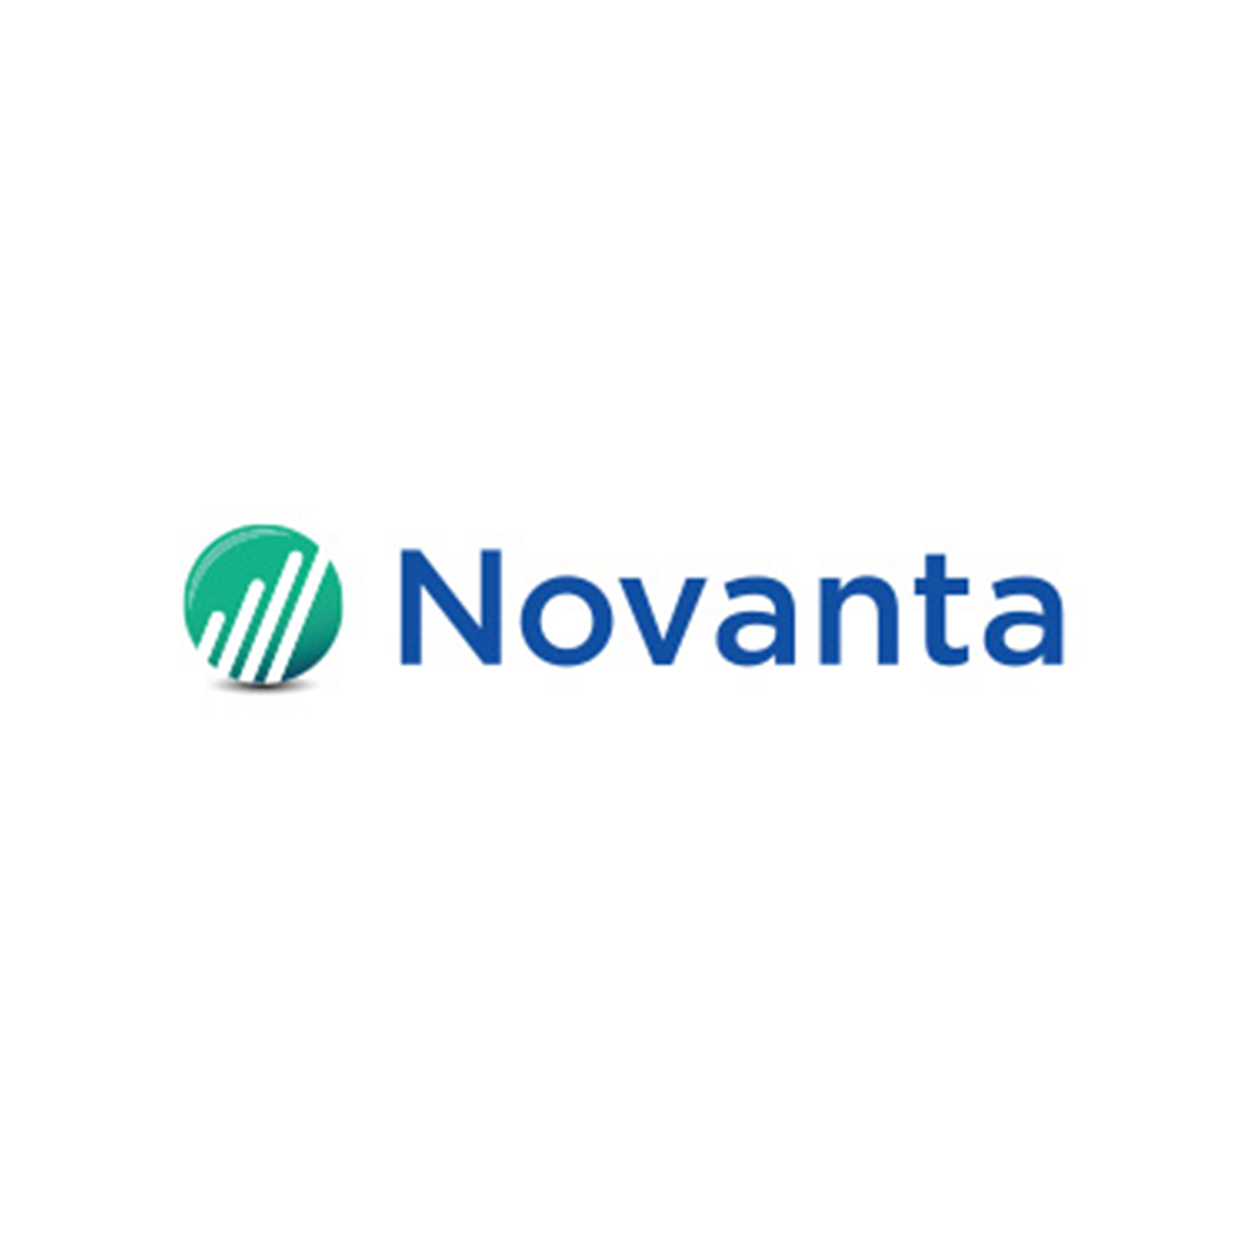 Novanta - Provide hardware deployment, migration and end user support services to Novanta company Celeramotion.  Celeramotion is a world-class precision encoder, motor and custom solution provider.